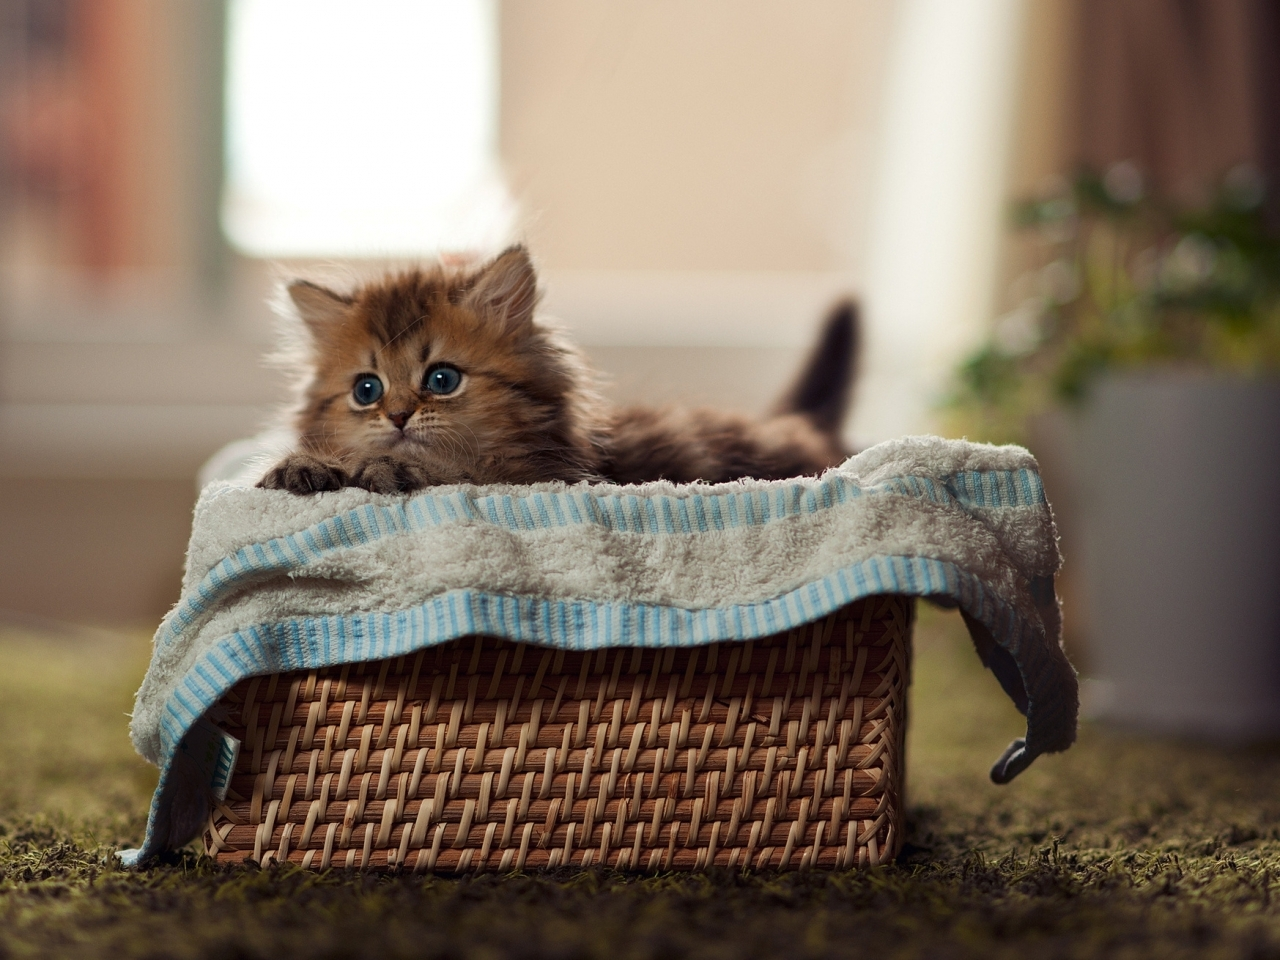 15652 download wallpaper Animals, Cats screensavers and pictures for free